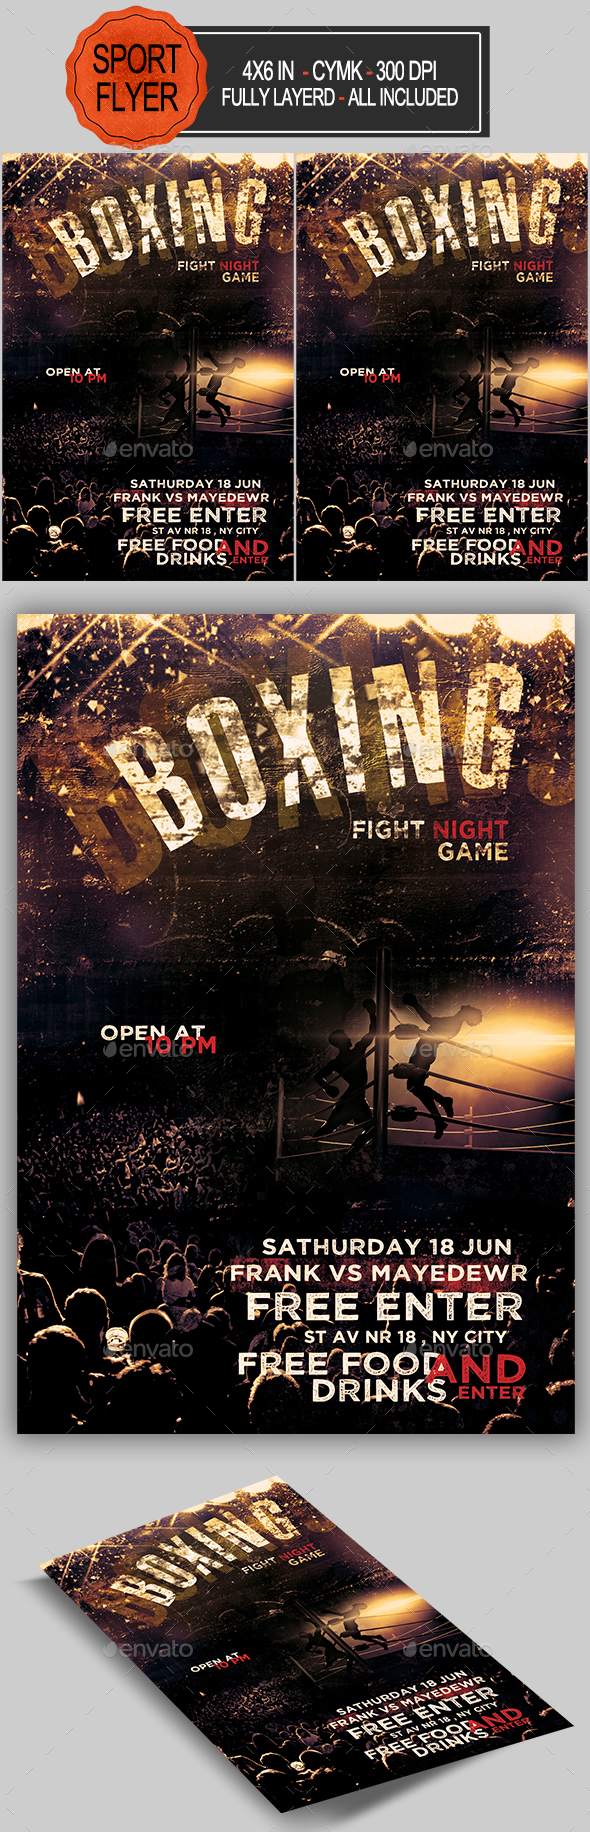 Boxing Poster Graphics Designs Templates From Graphicriver